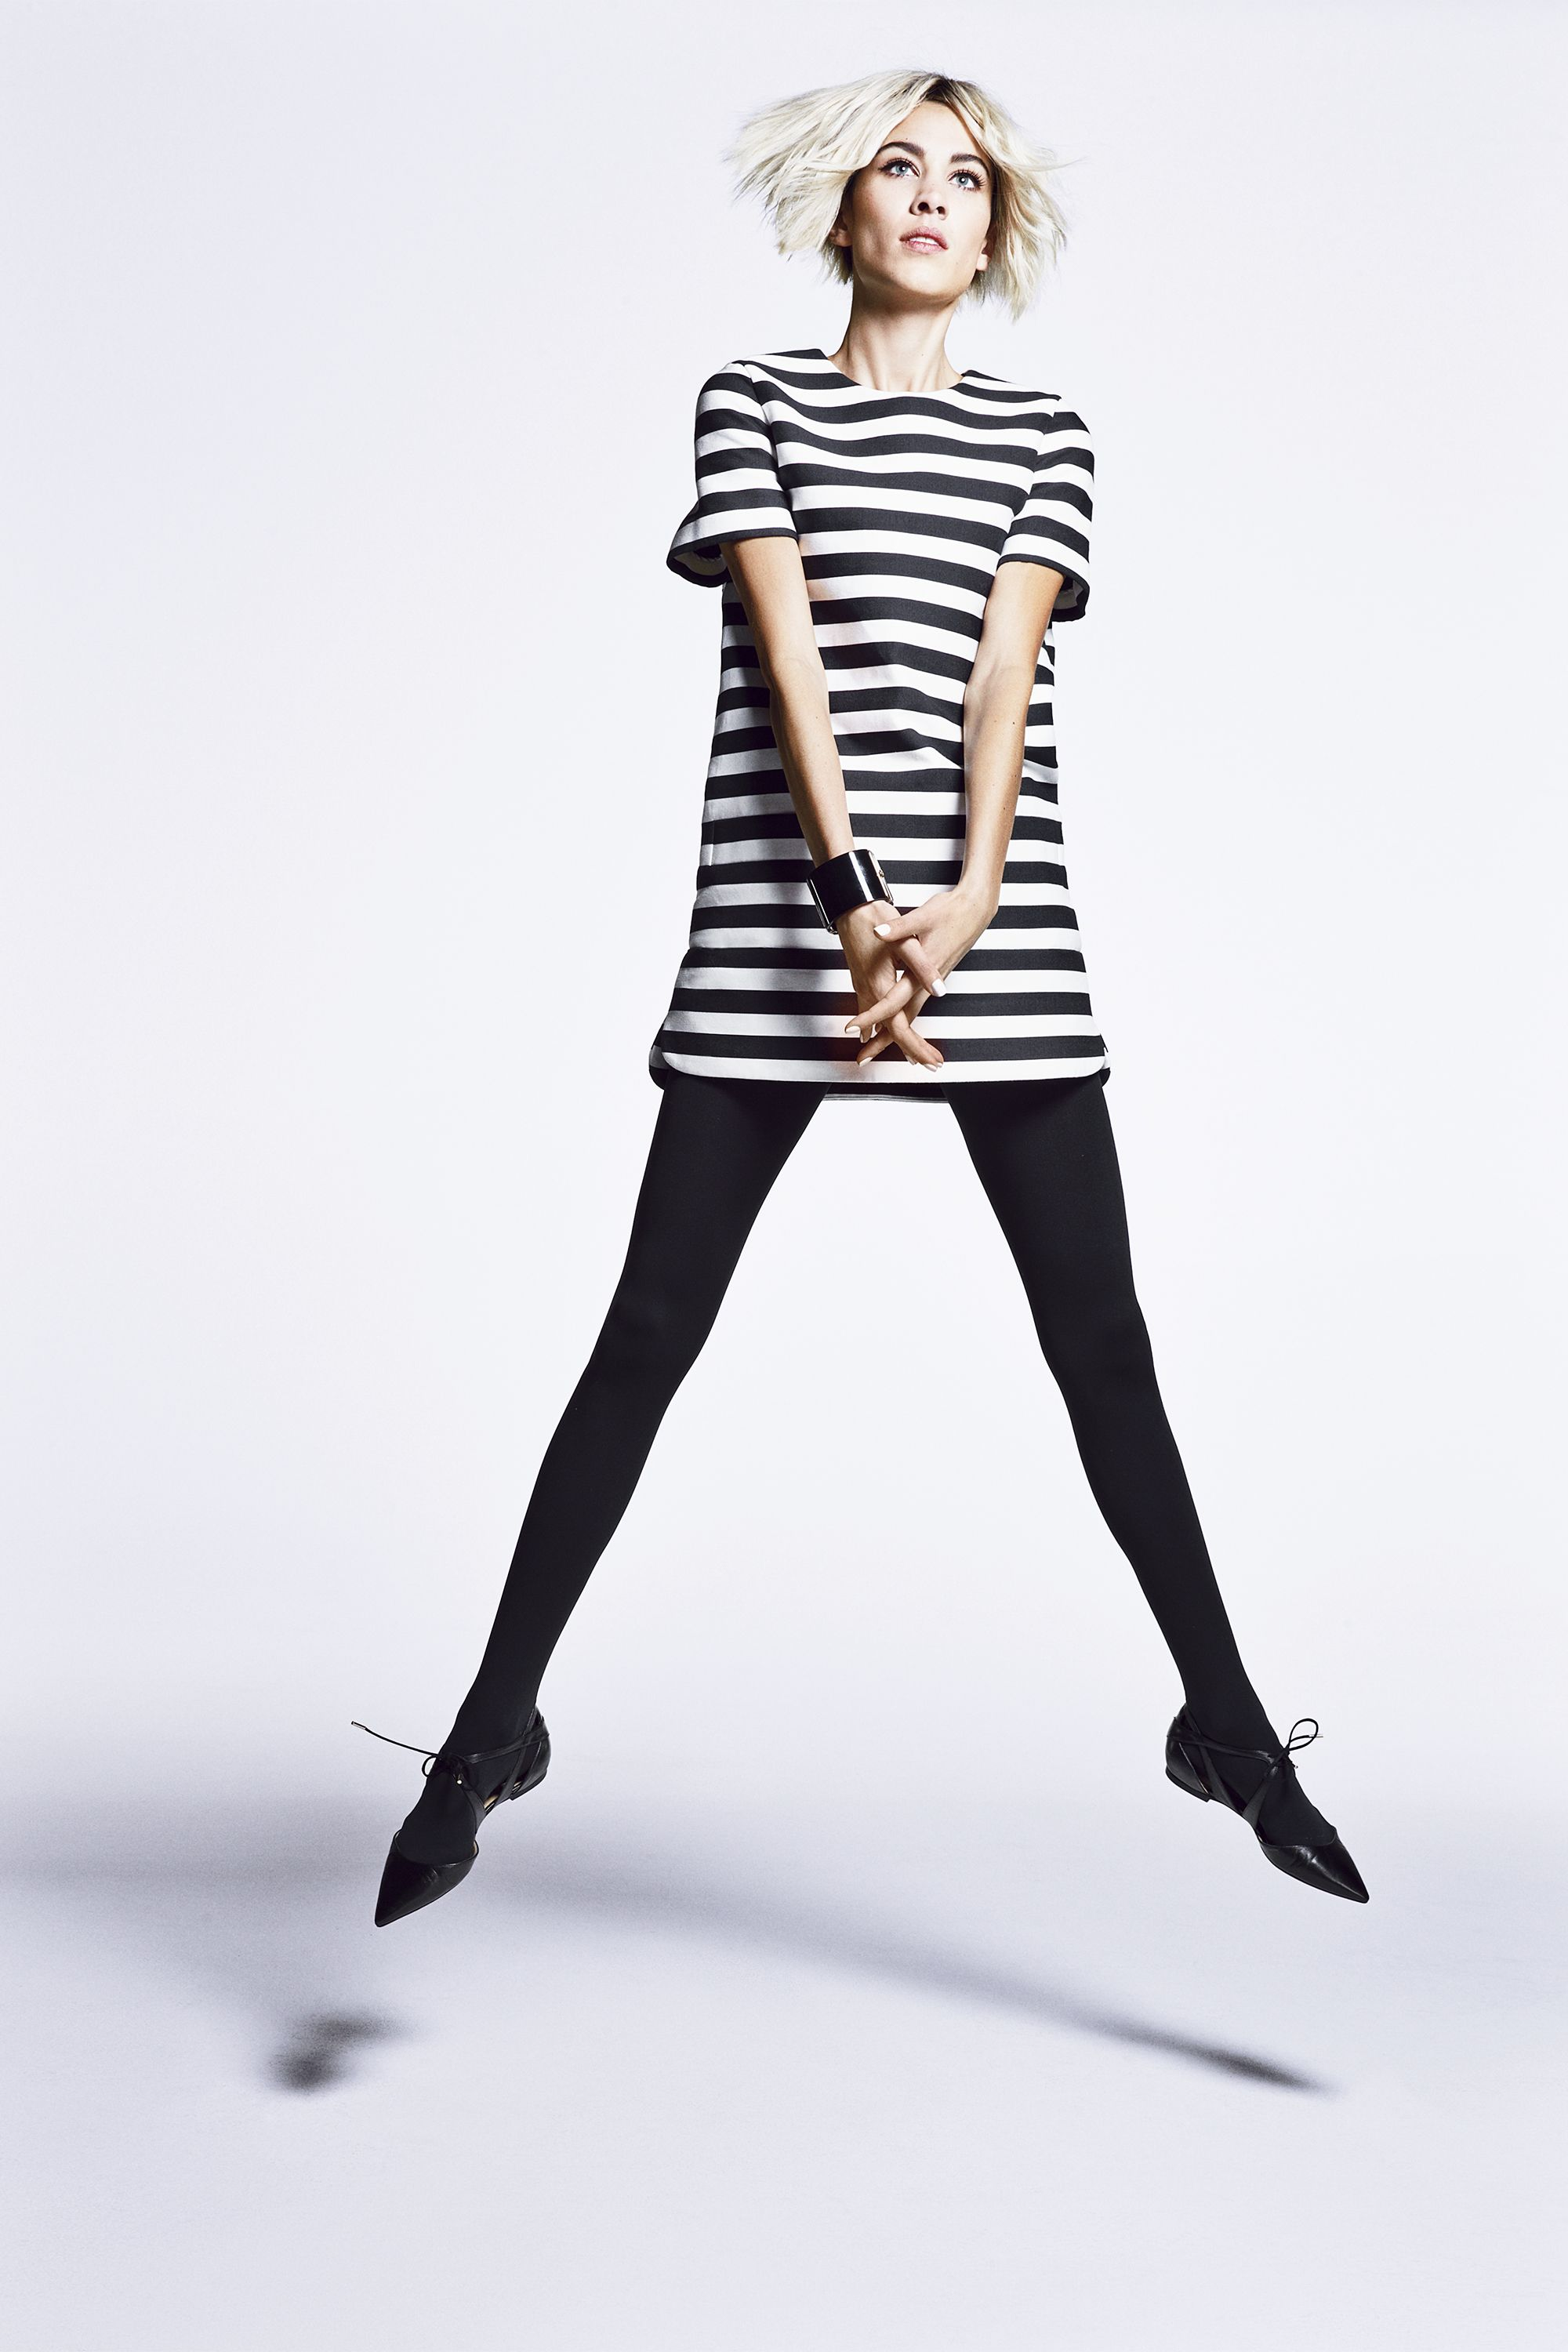 "<strong>Kate Spade New York</strong> dress, $398, <a href=""http://shop.nordstrom.com/s/kate-spade-new-york-stripe-shift-dress/3926787"" target=""_blank"">nordstrom.com</a>&#x3B; <strong>Chanel</strong> bracelet, $1,850, Nordstrom, 800-695-8000&#x3B;&nbsp&#x3B;<strong>Wolford </strong>tights, $55, <a href=""http://shop.nordstrom.com/s/wolford-matte-opaque-tights/3253809?origin=PredictiveSearchProducts"" target=""_blank"">nordstrom.com</a>&#x3B;&nbsp&#x3B;<strong>Jimmy Choo</strong> shoes, $795,&nbsp&#x3B;<a href=""http://us.jimmychoo.com/en/women/shoes/flats/mardi/black-patent-and-white-textured-leather-brogues-143mardiptx.html?cgid=women-shoes-flats#dwvar_143mardiptx_color=Black/White&amp&#x3B;start=1&amp&#x3B;searchgridpos=1&amp&#x3B;srule=Merchandising Default"">jimmychoo.com</a>.&nbsp&#x3B;"